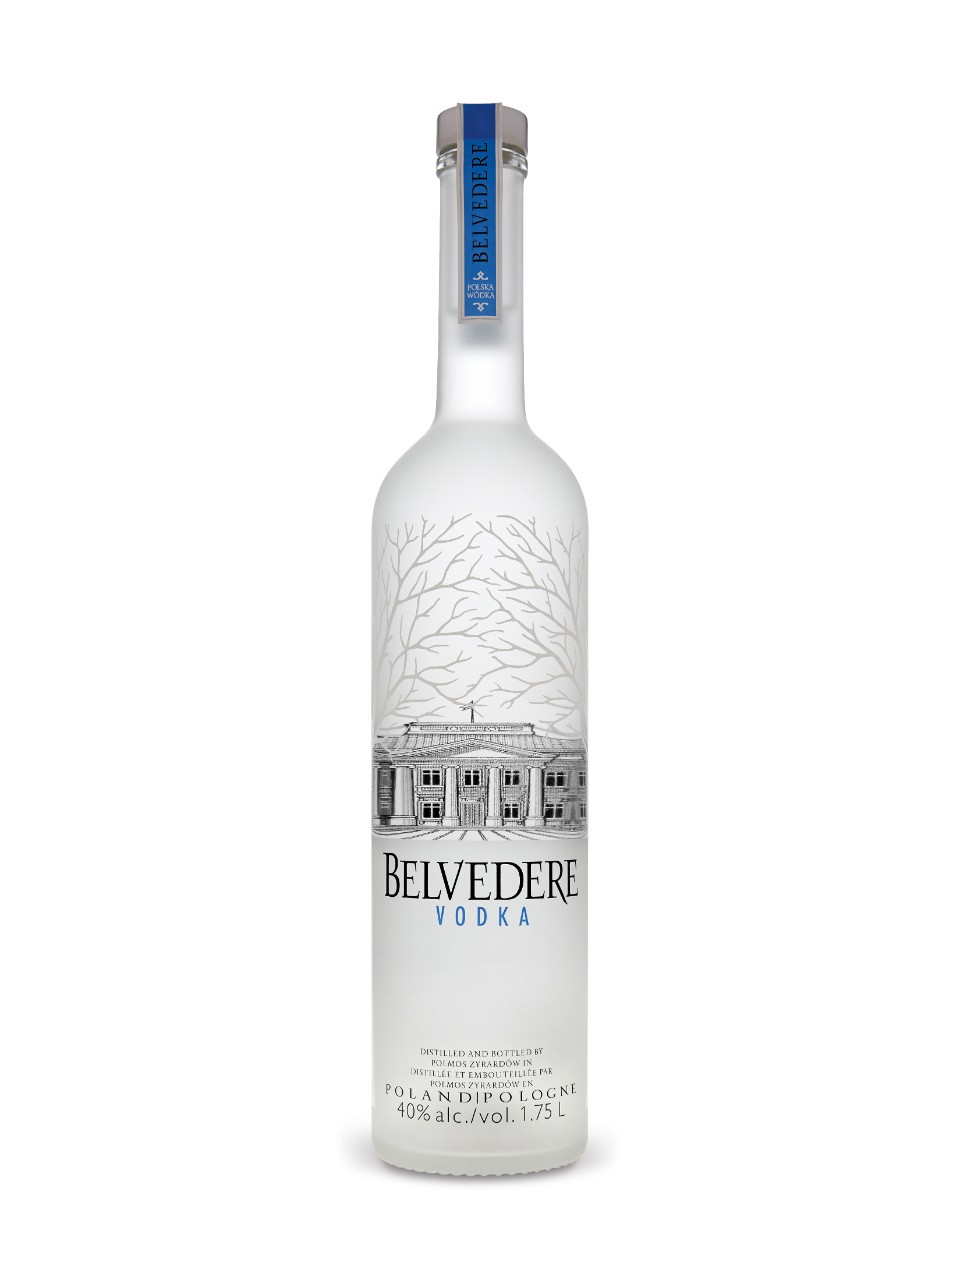 Belvedere Pure Vodka from LCBO